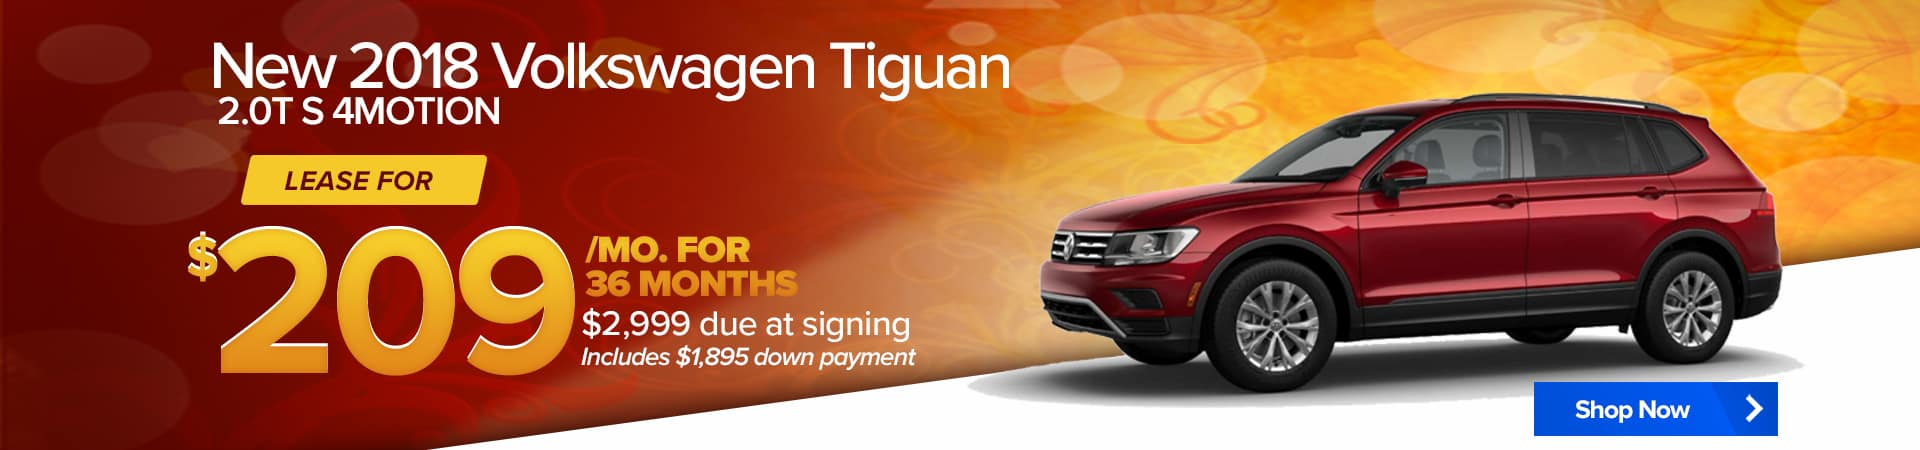 September special for the Volkswagen Tiguan Limited 4Motion.